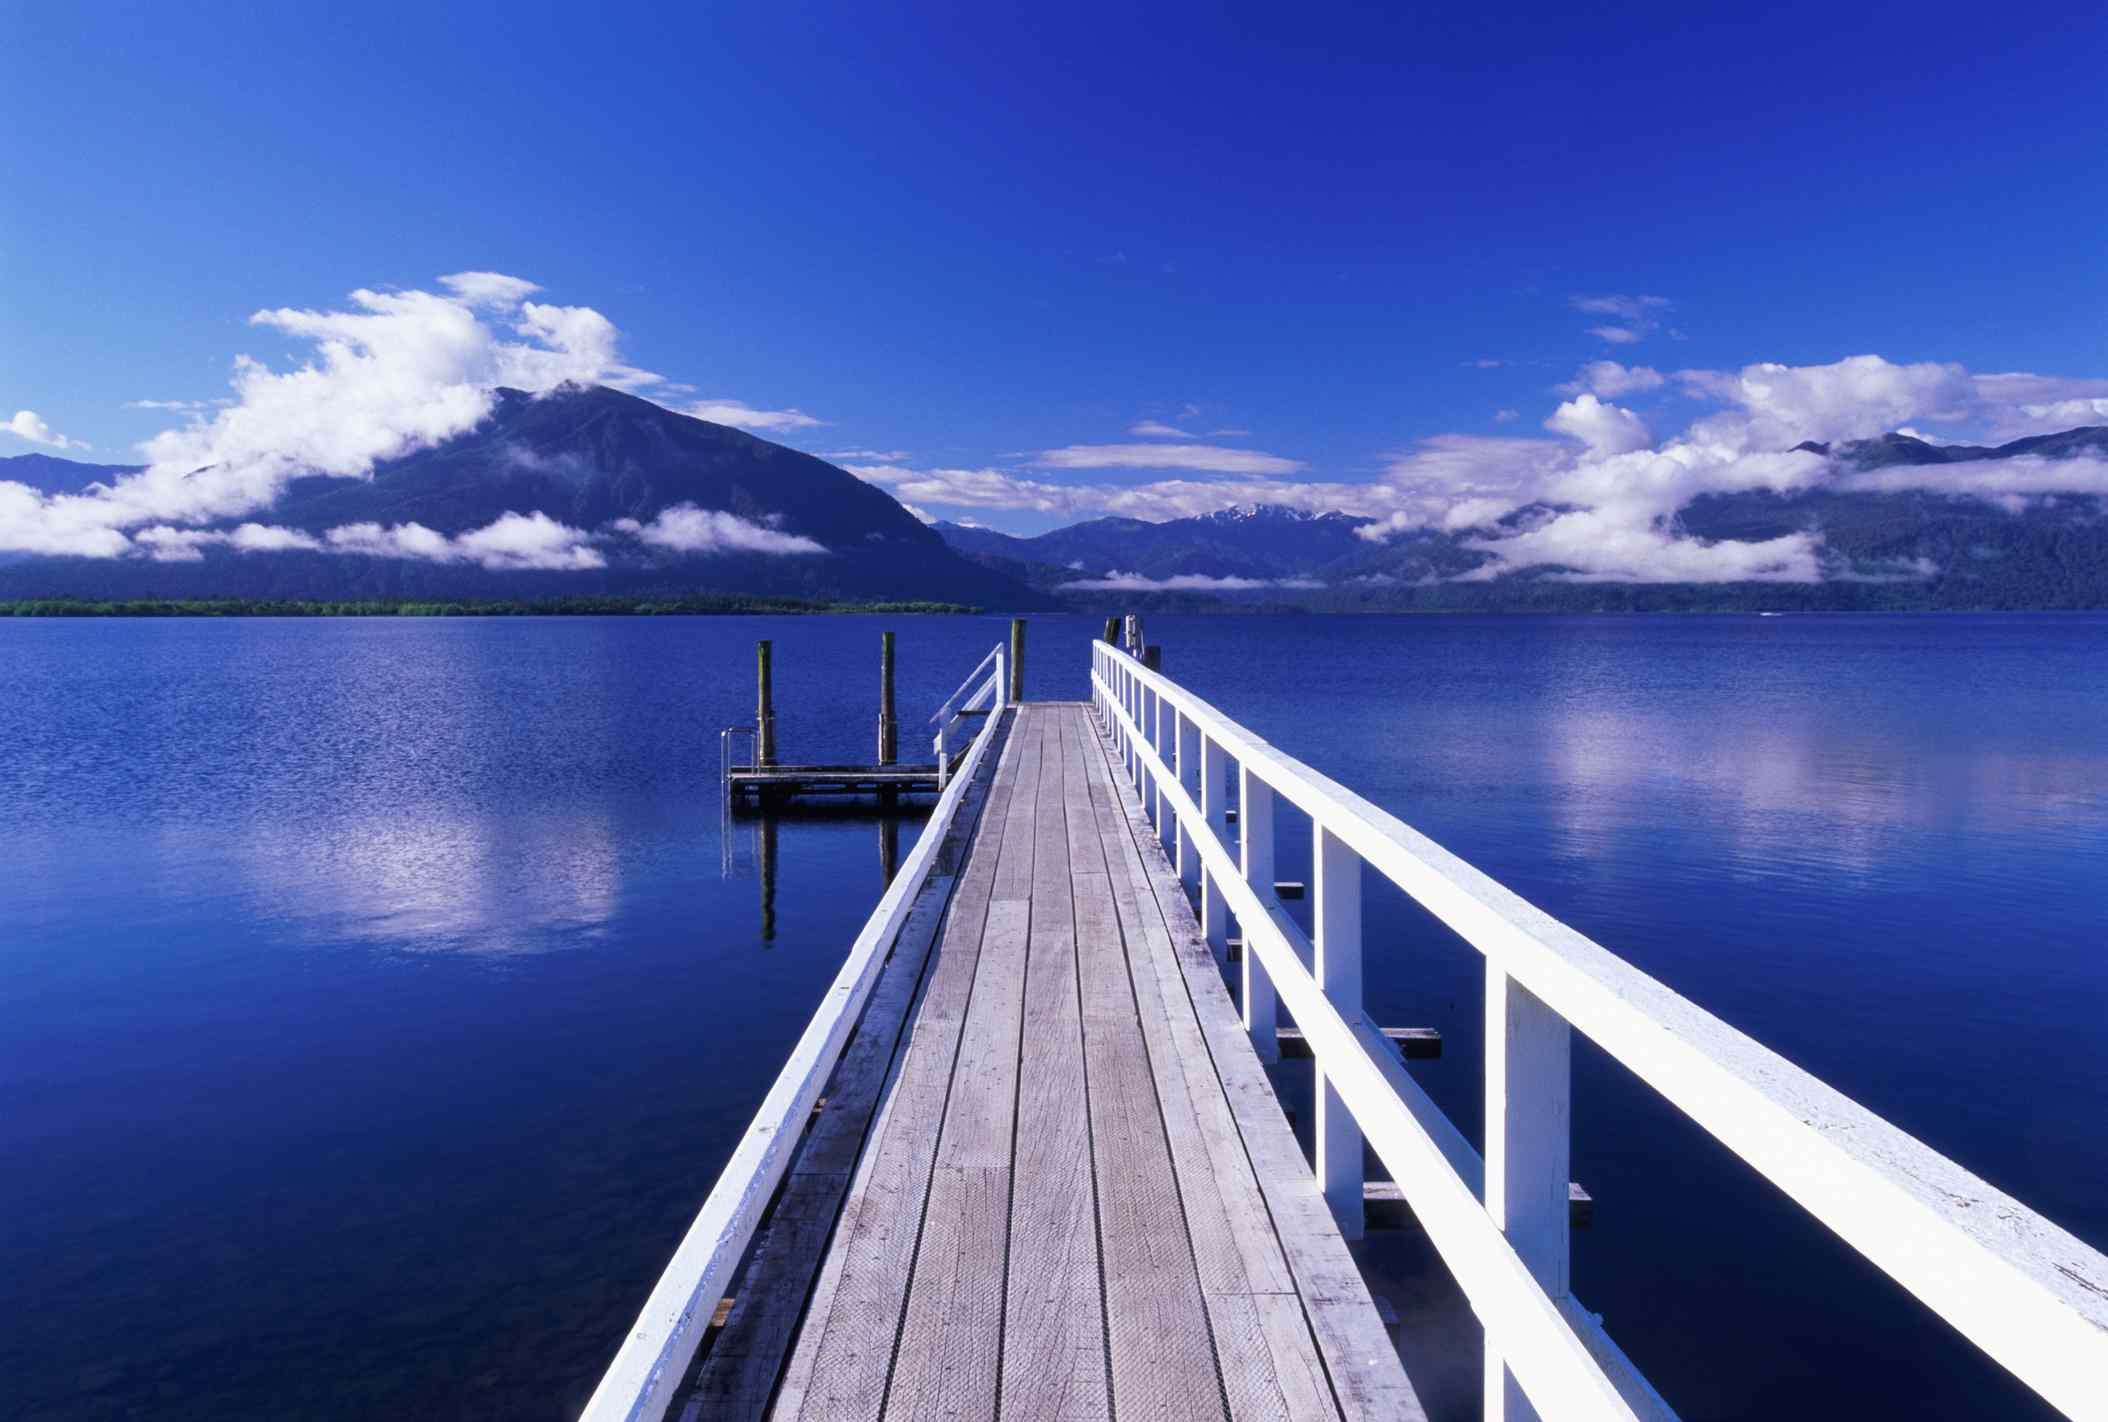 white wooden jetty leading into calm blue lake with mountains and wispy white clouds in background